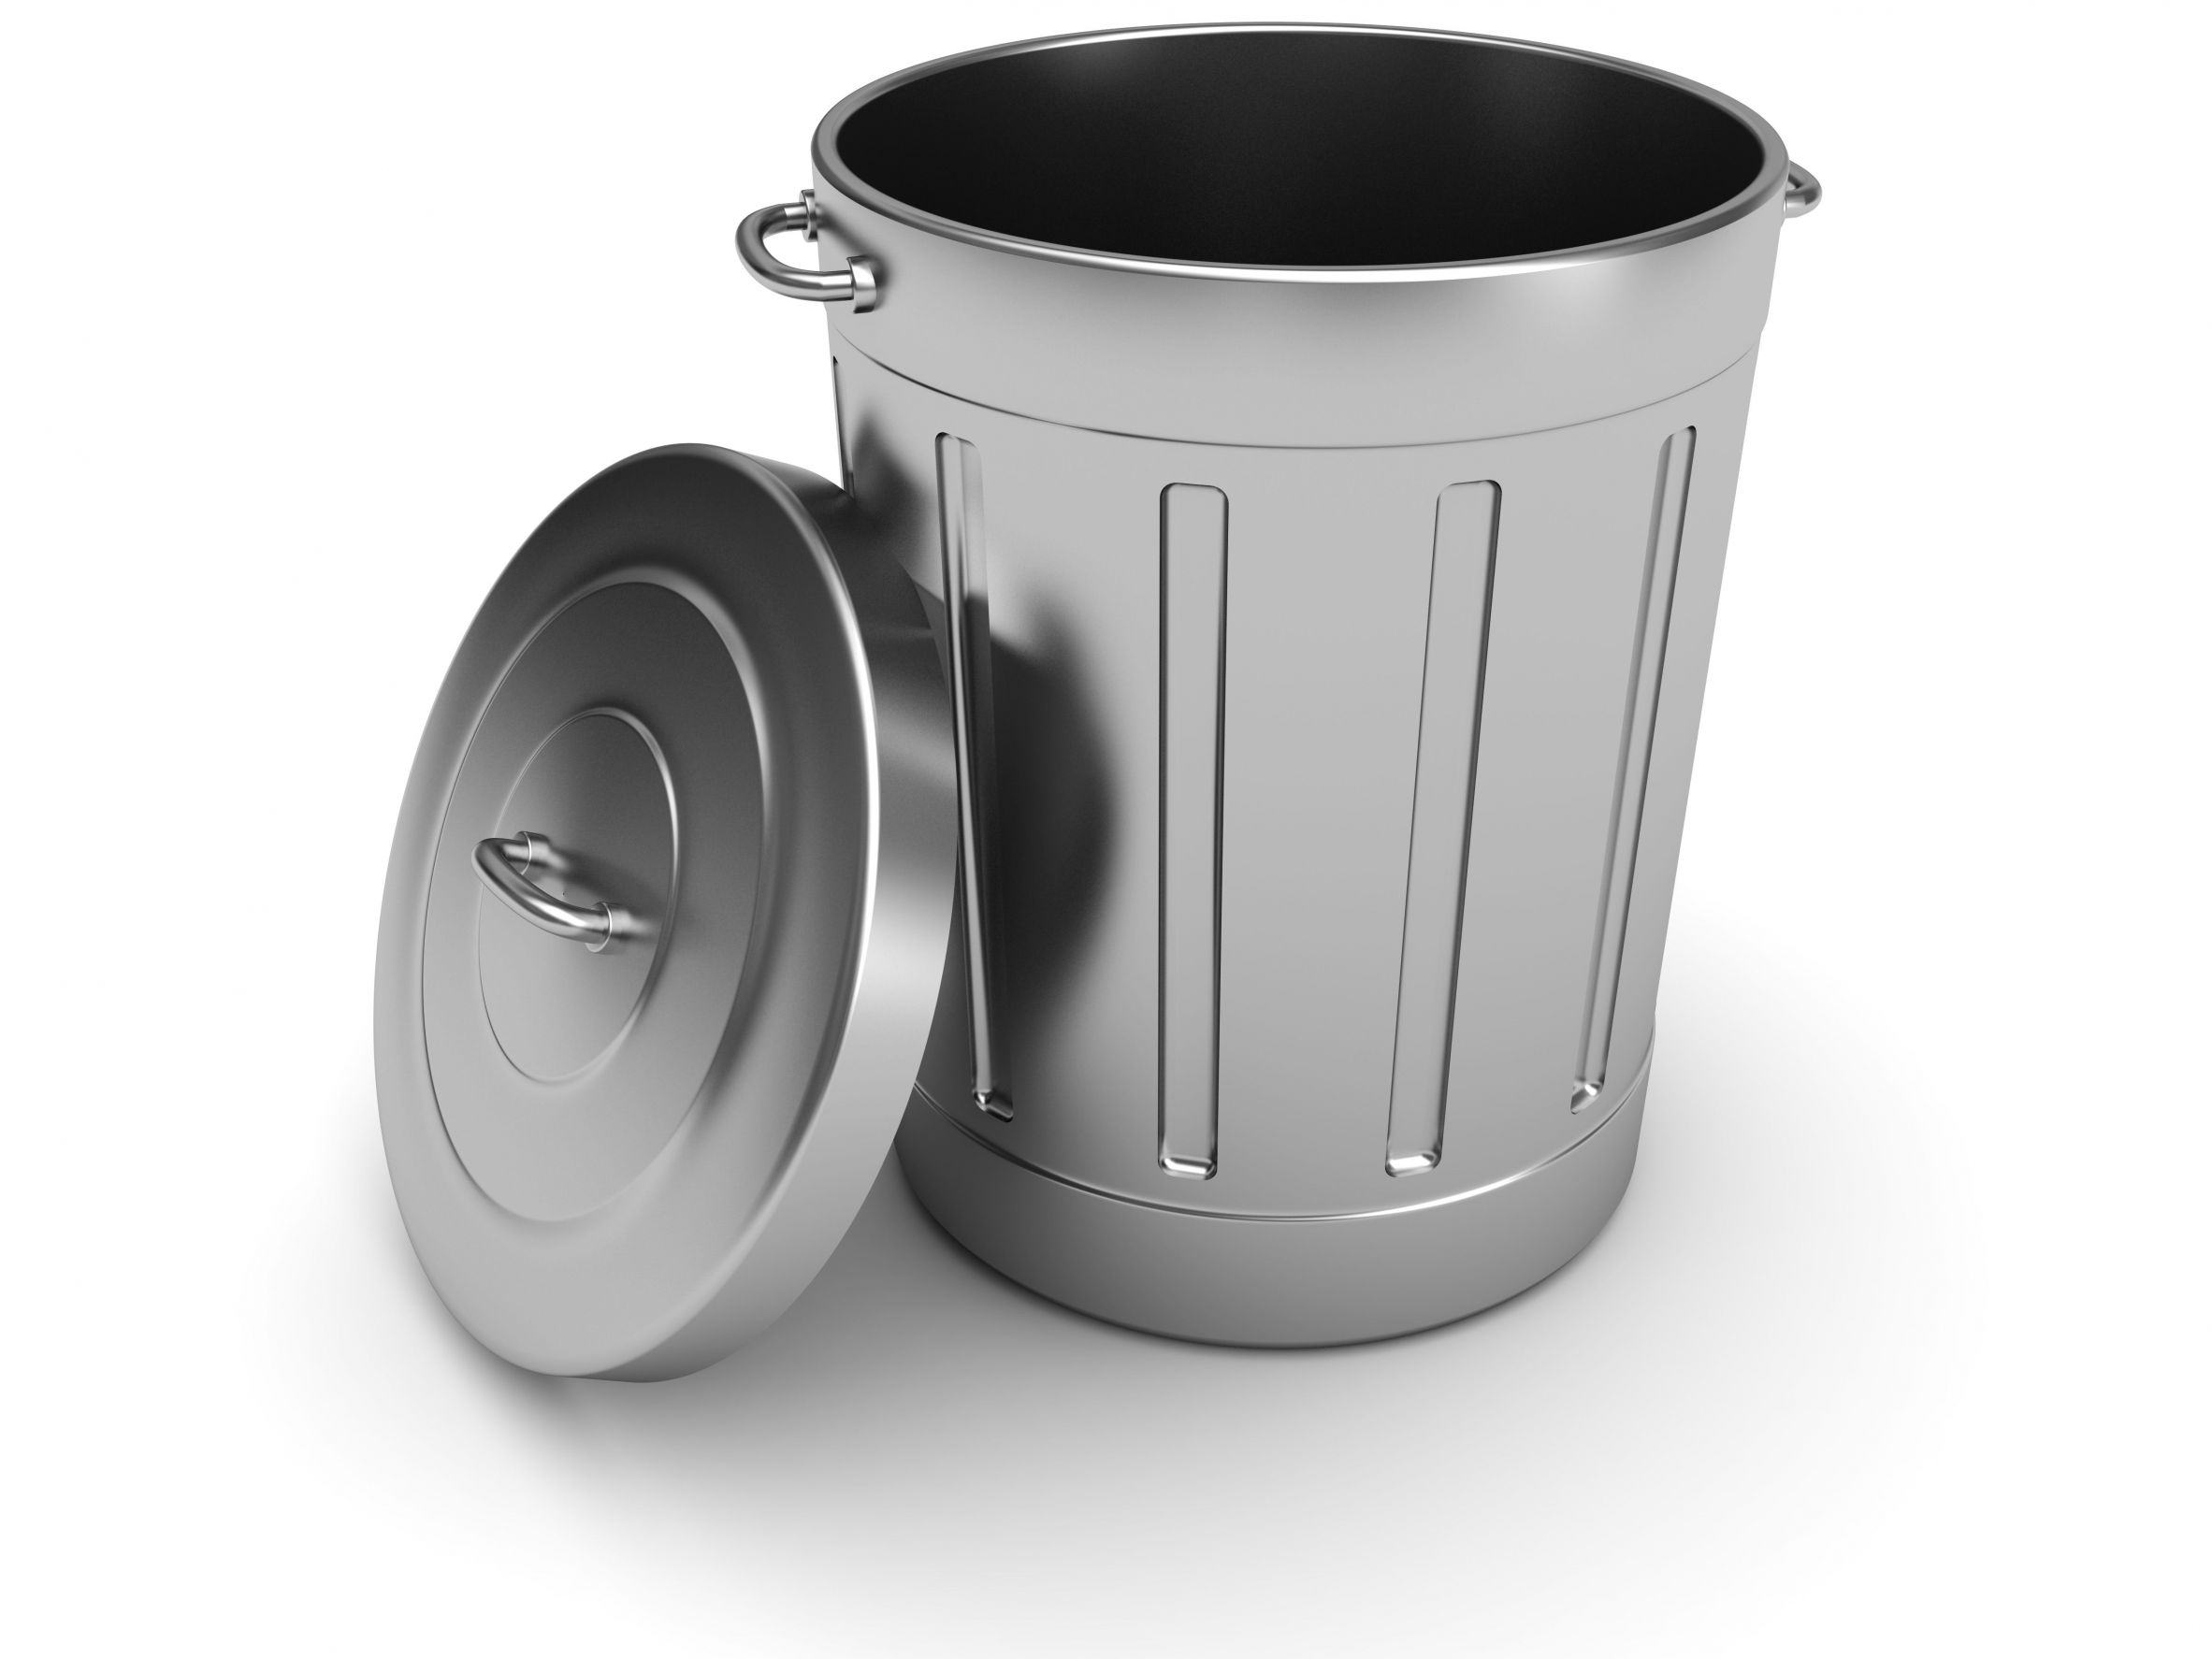 Garbage can with open handles and a secure lid